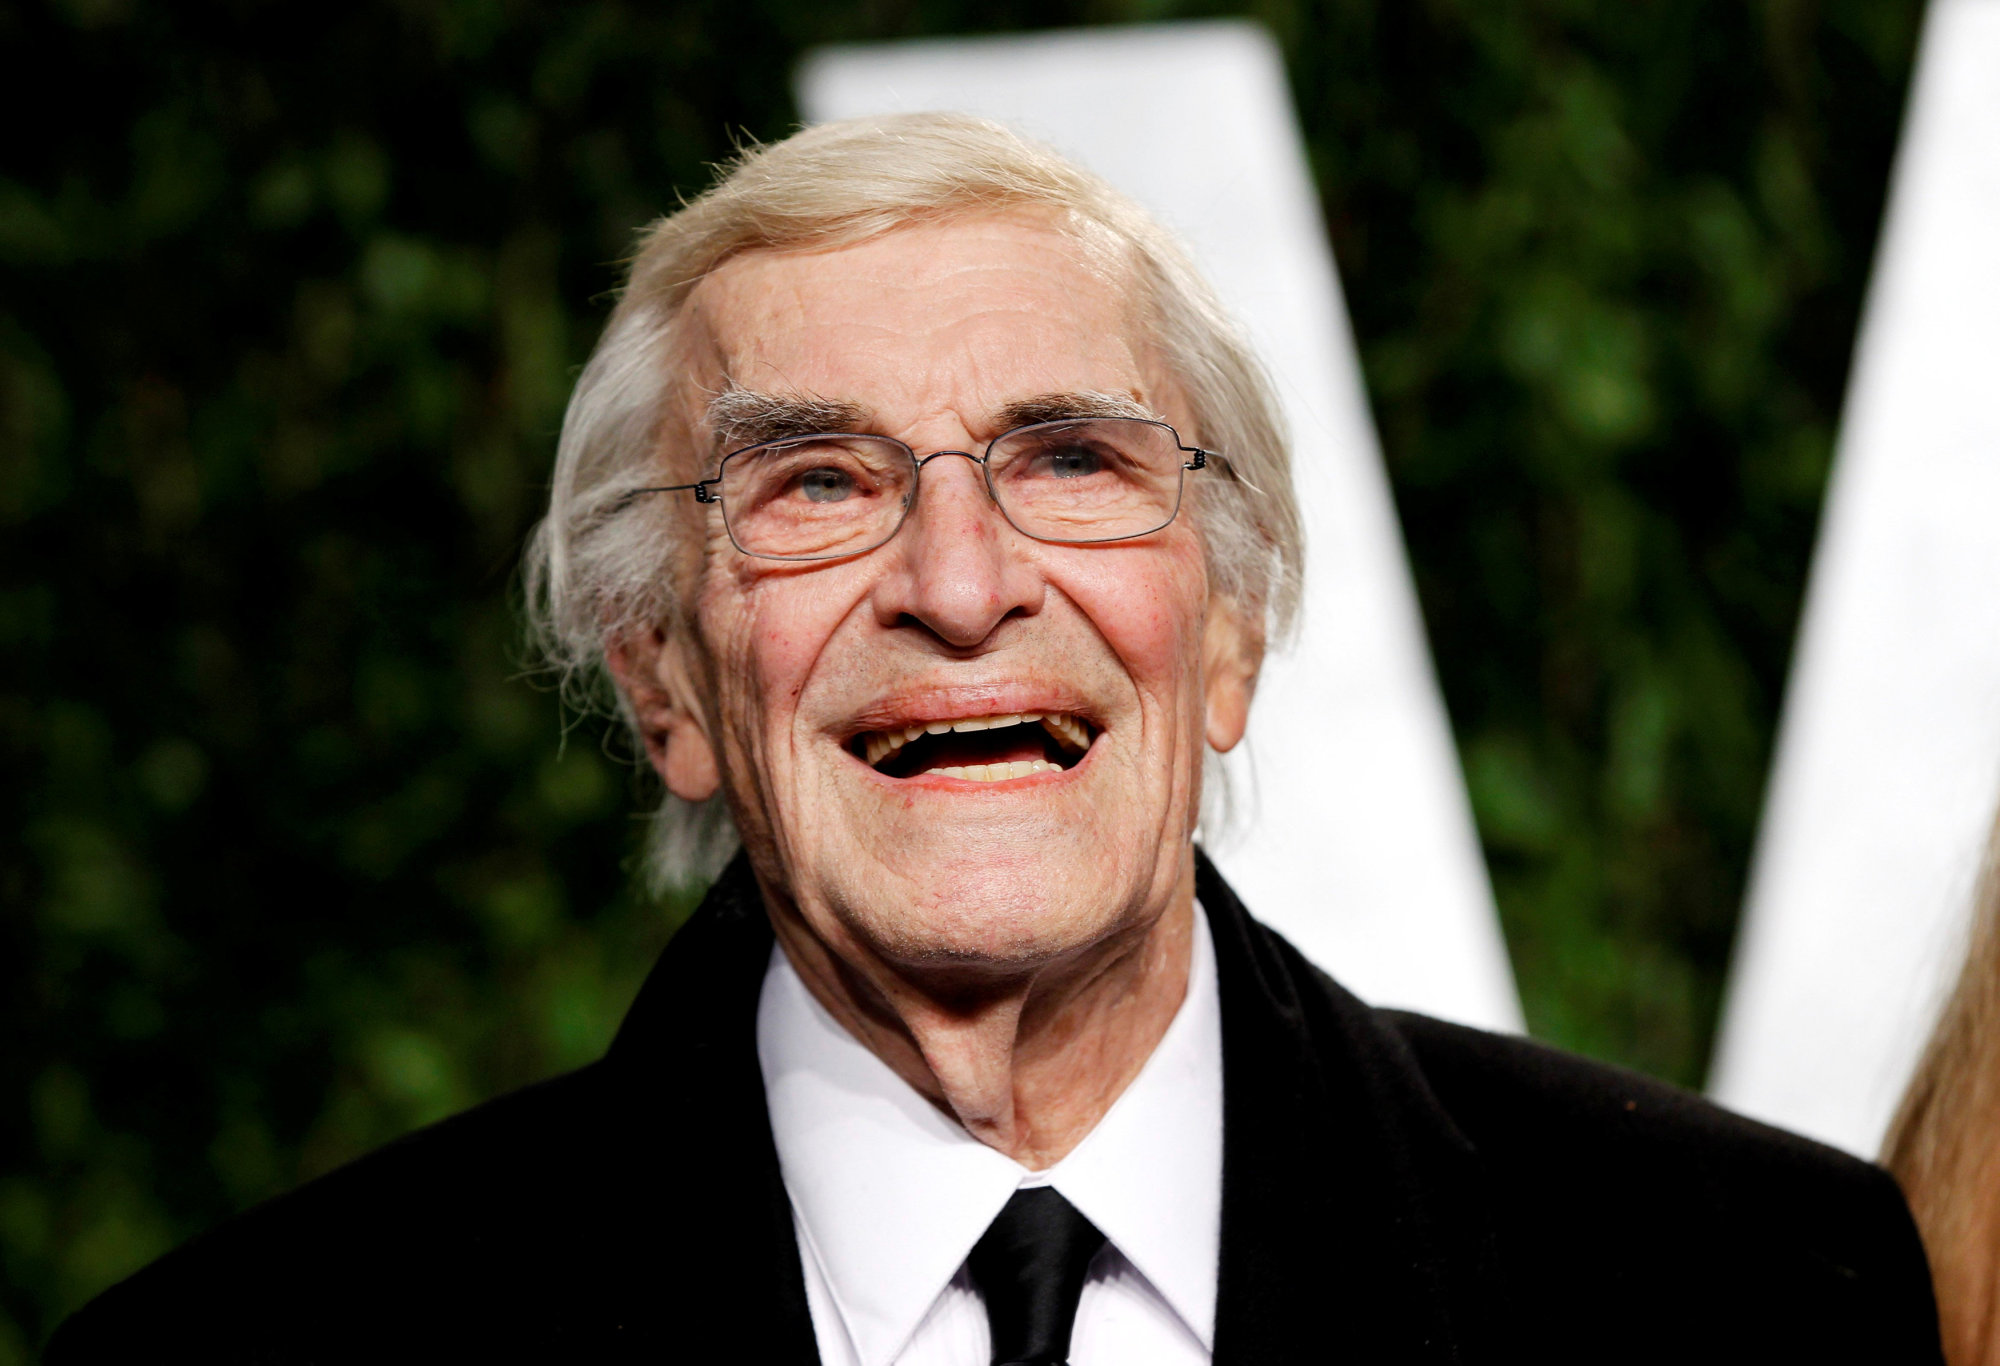 Actor Martin Landau smiles as he arrives at the 2012 Vanity Fair Oscar party in West Hollywood, California, in 2012. Landau died Sunday at age 89. | REUTERS